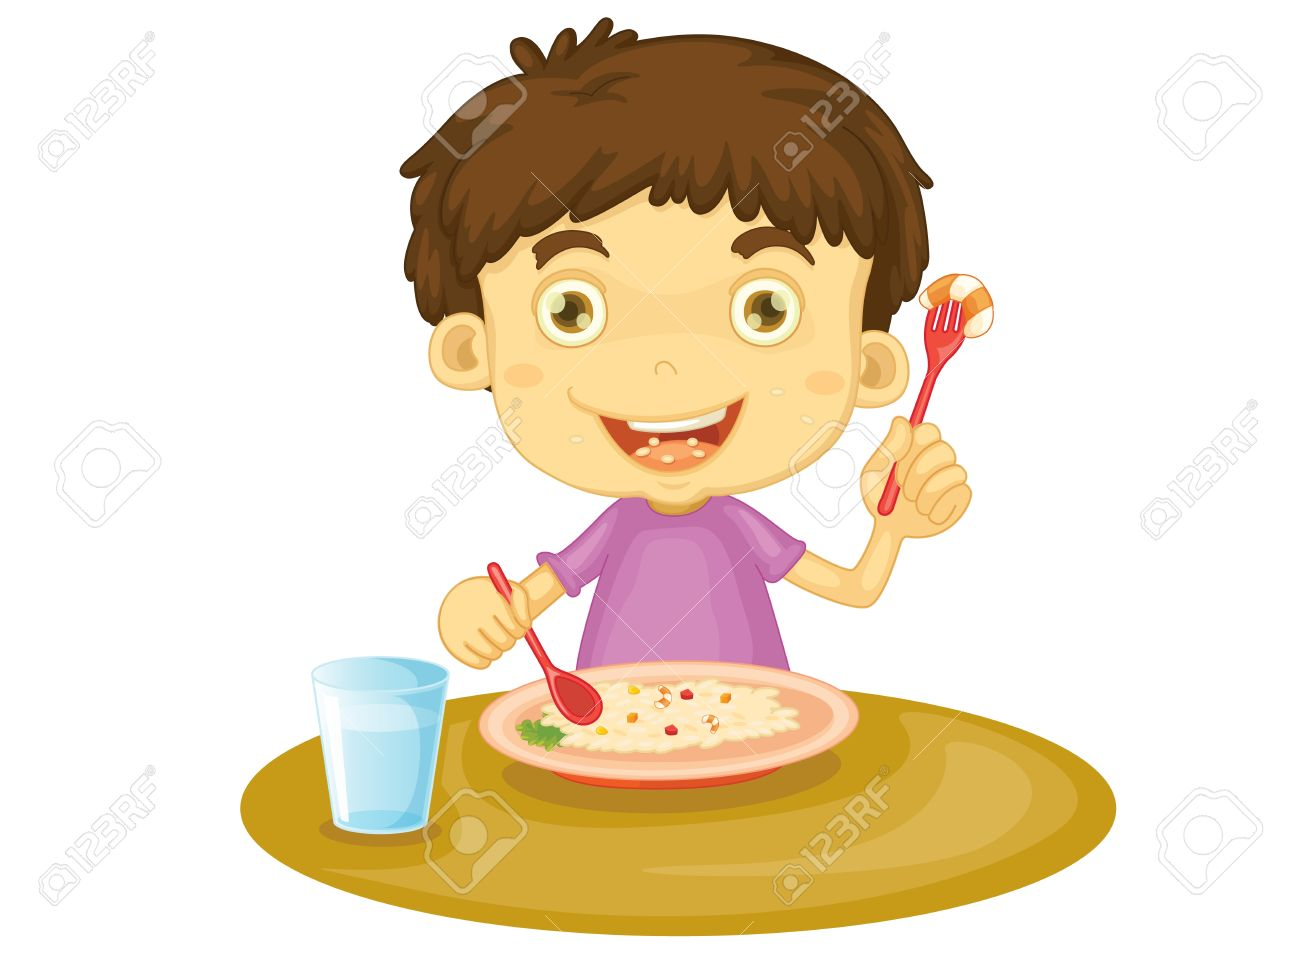 illustration of child eating at a table royalty free cliparts